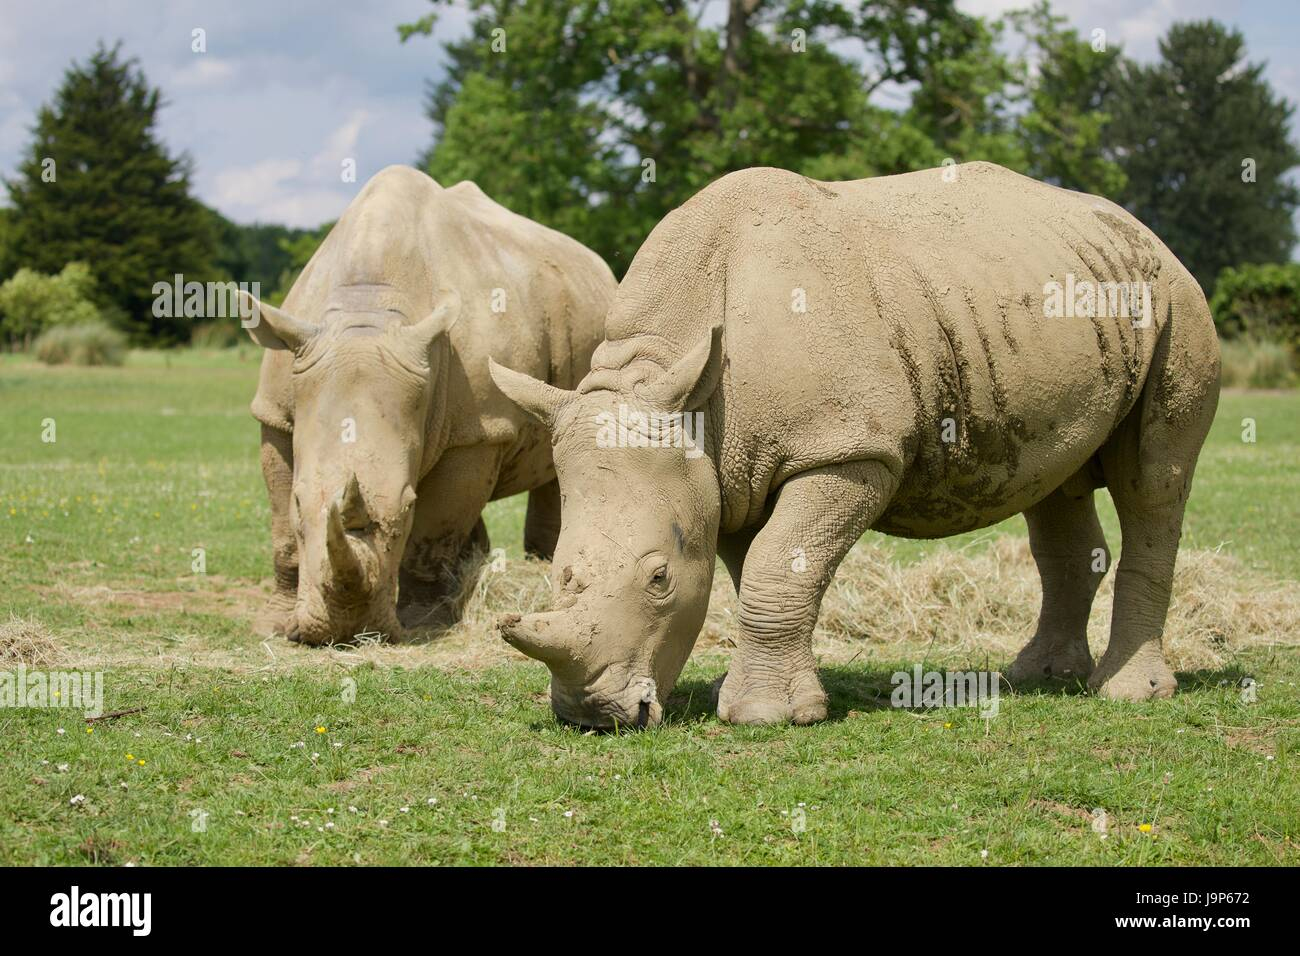 Southern White Rhinos at the Cotswold Wildlife Park - Stock Image